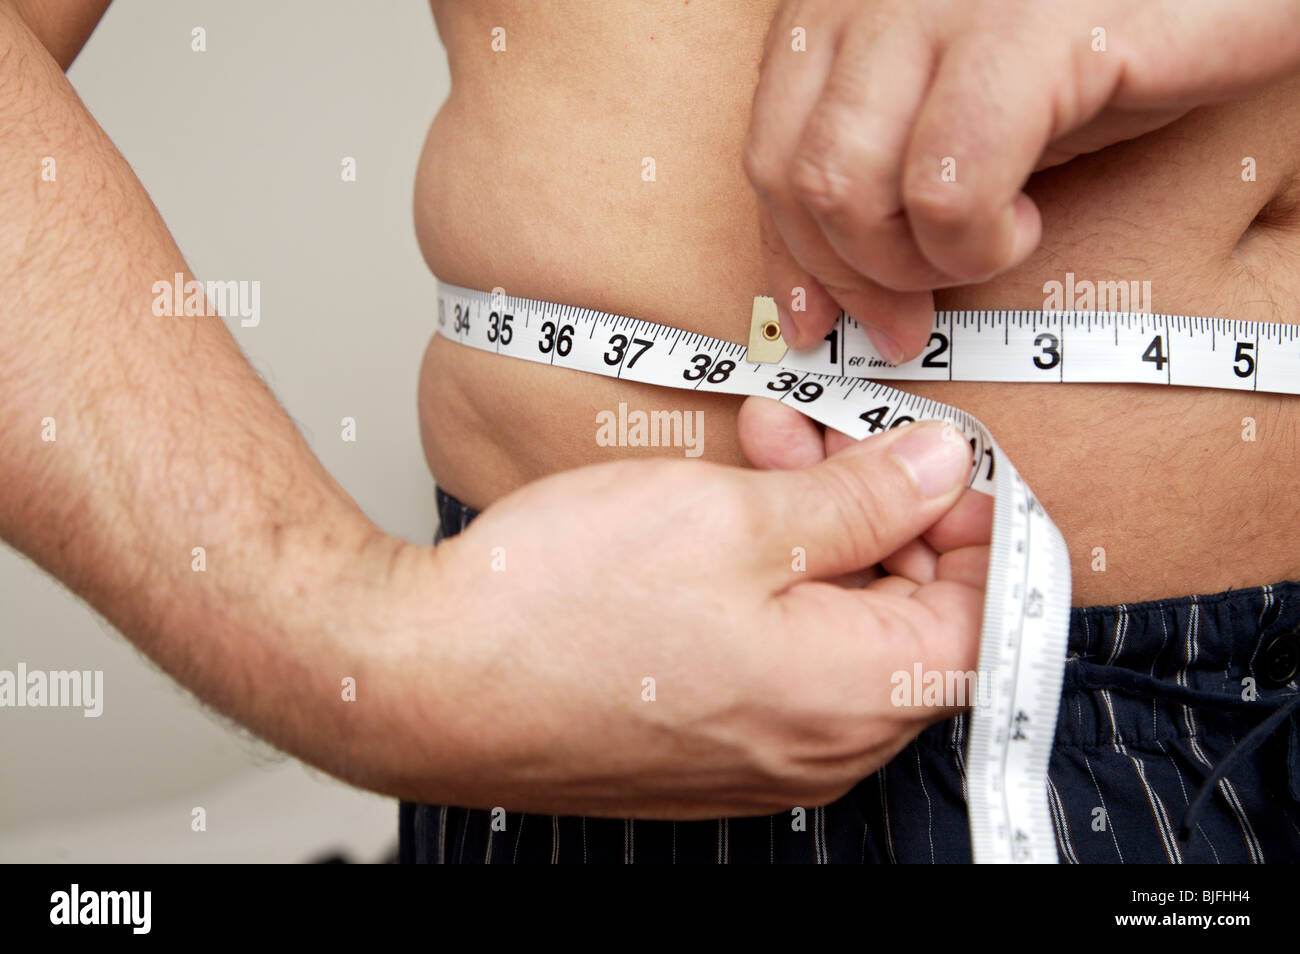 close-up-of-man-measuring-waist-with-tap